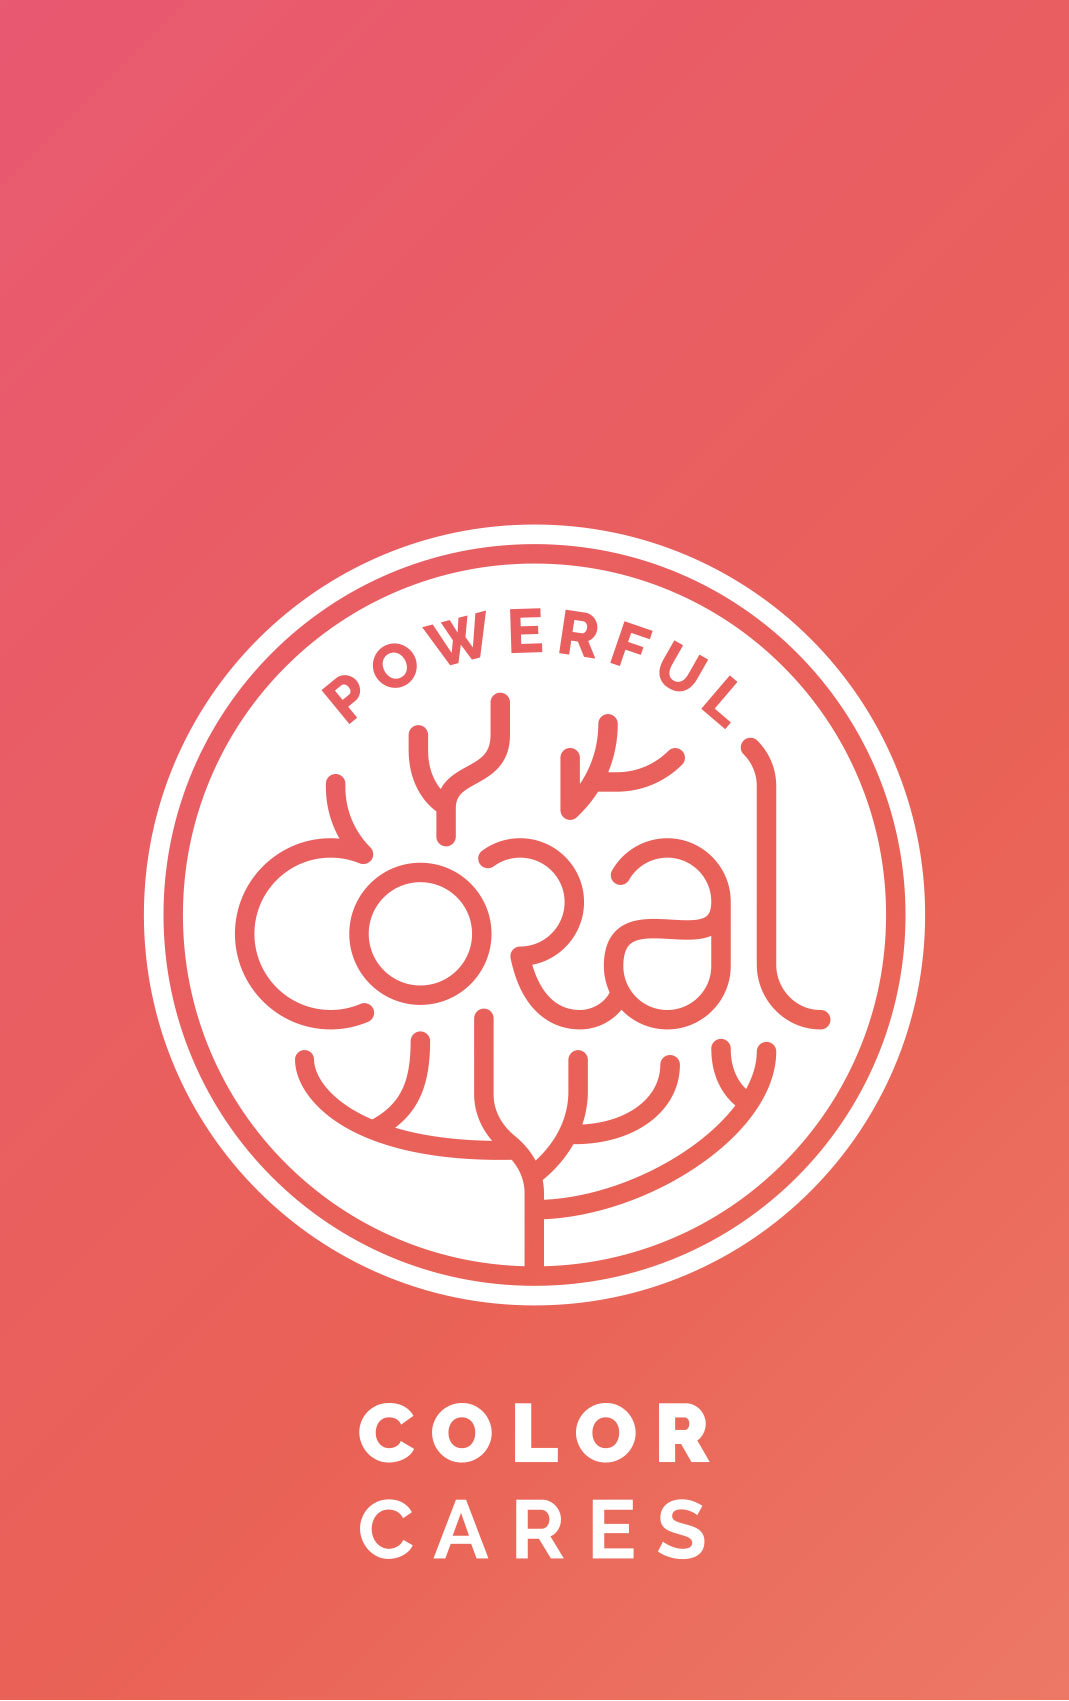 Powerful-Coral-Logo-Label